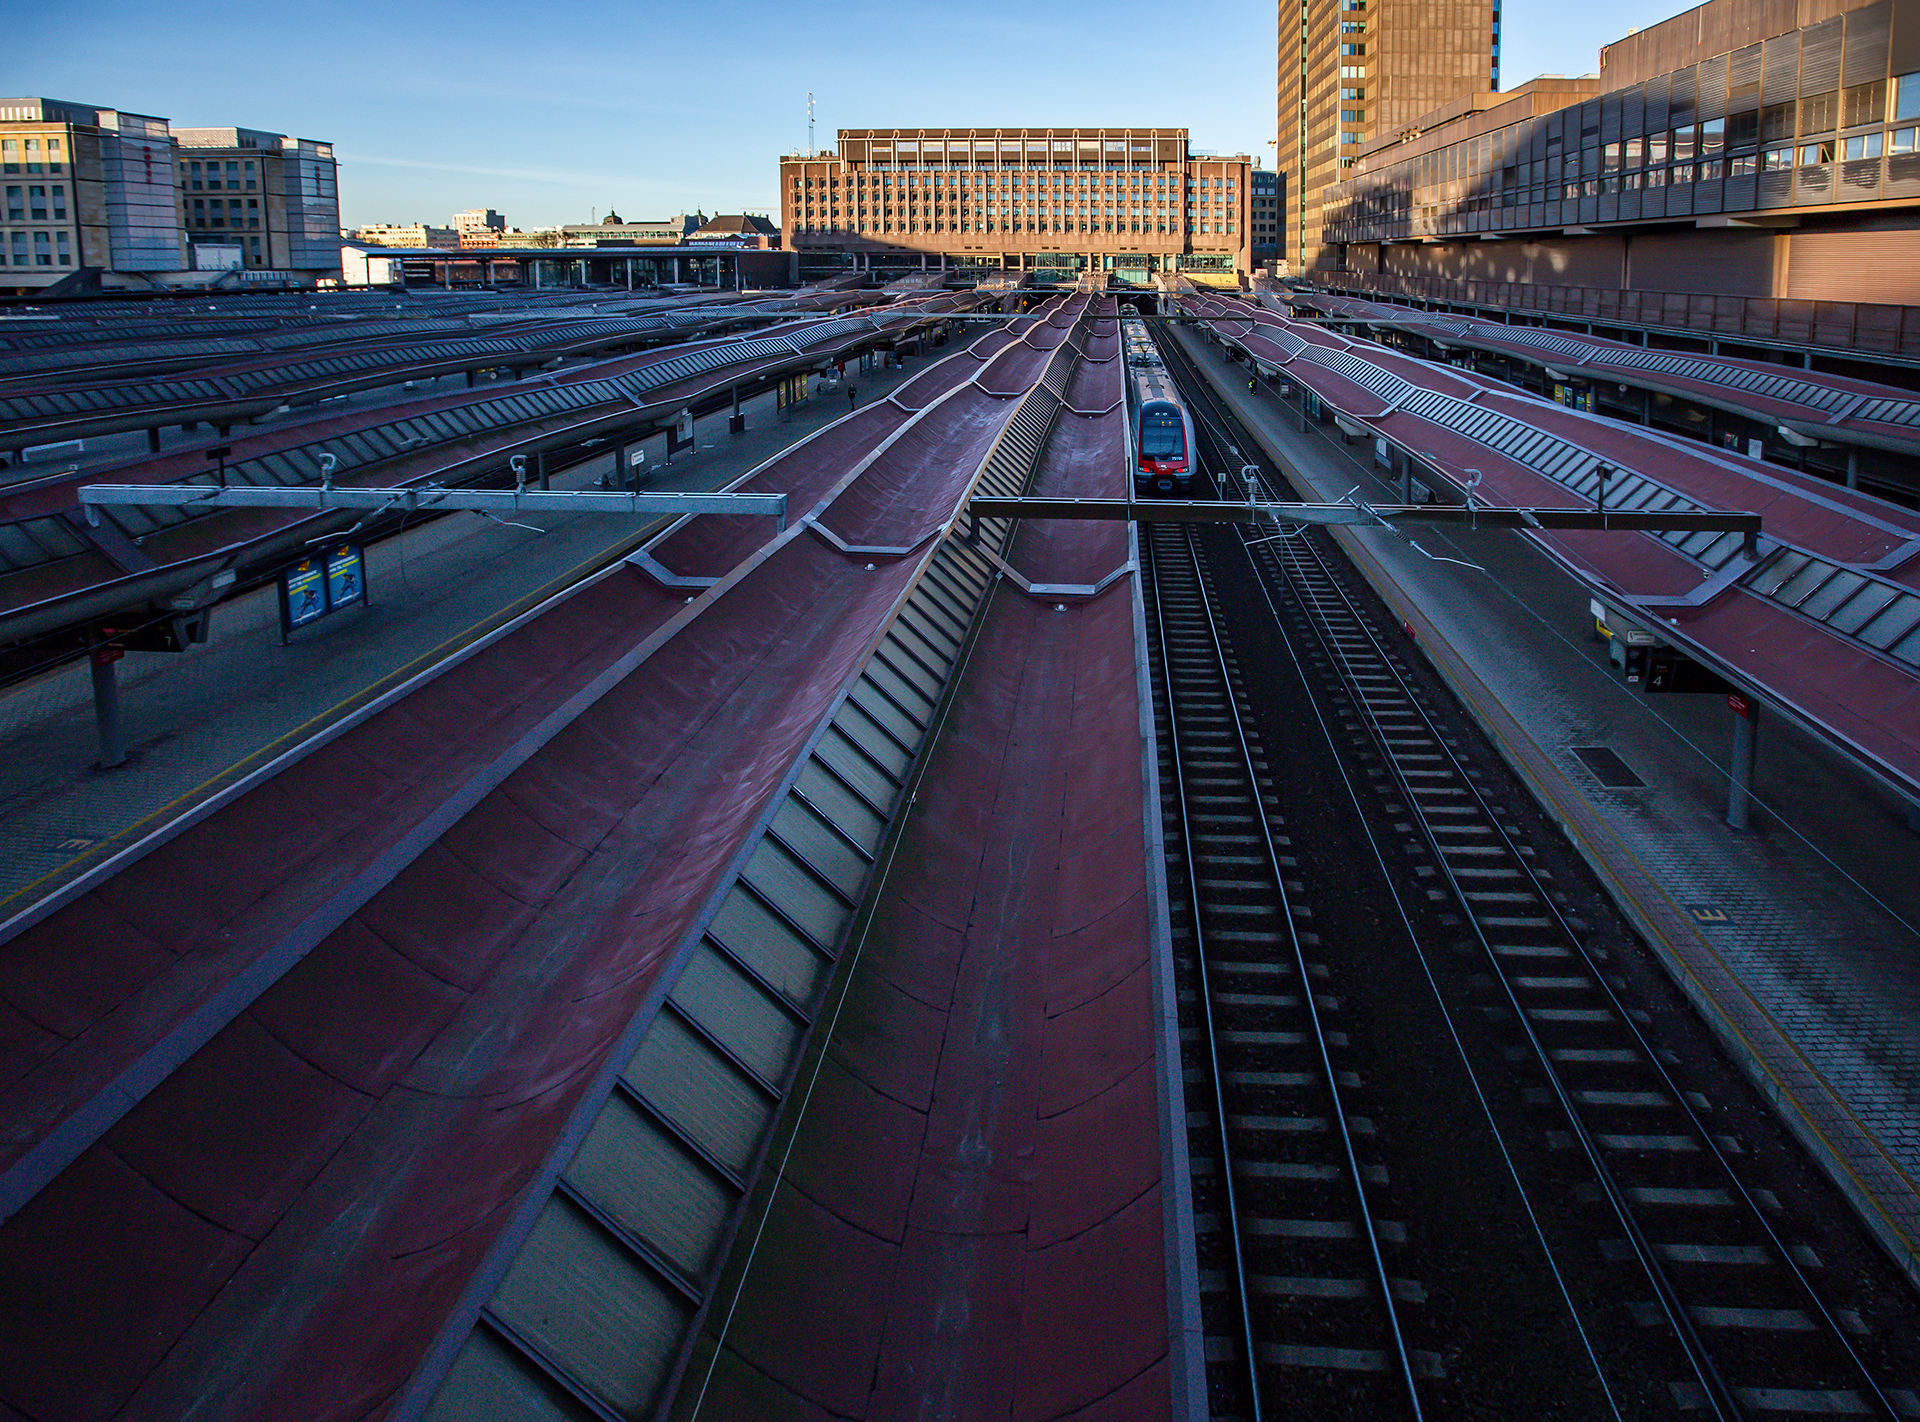 Oslo, Norway, architecture, urban, street, city, railway station